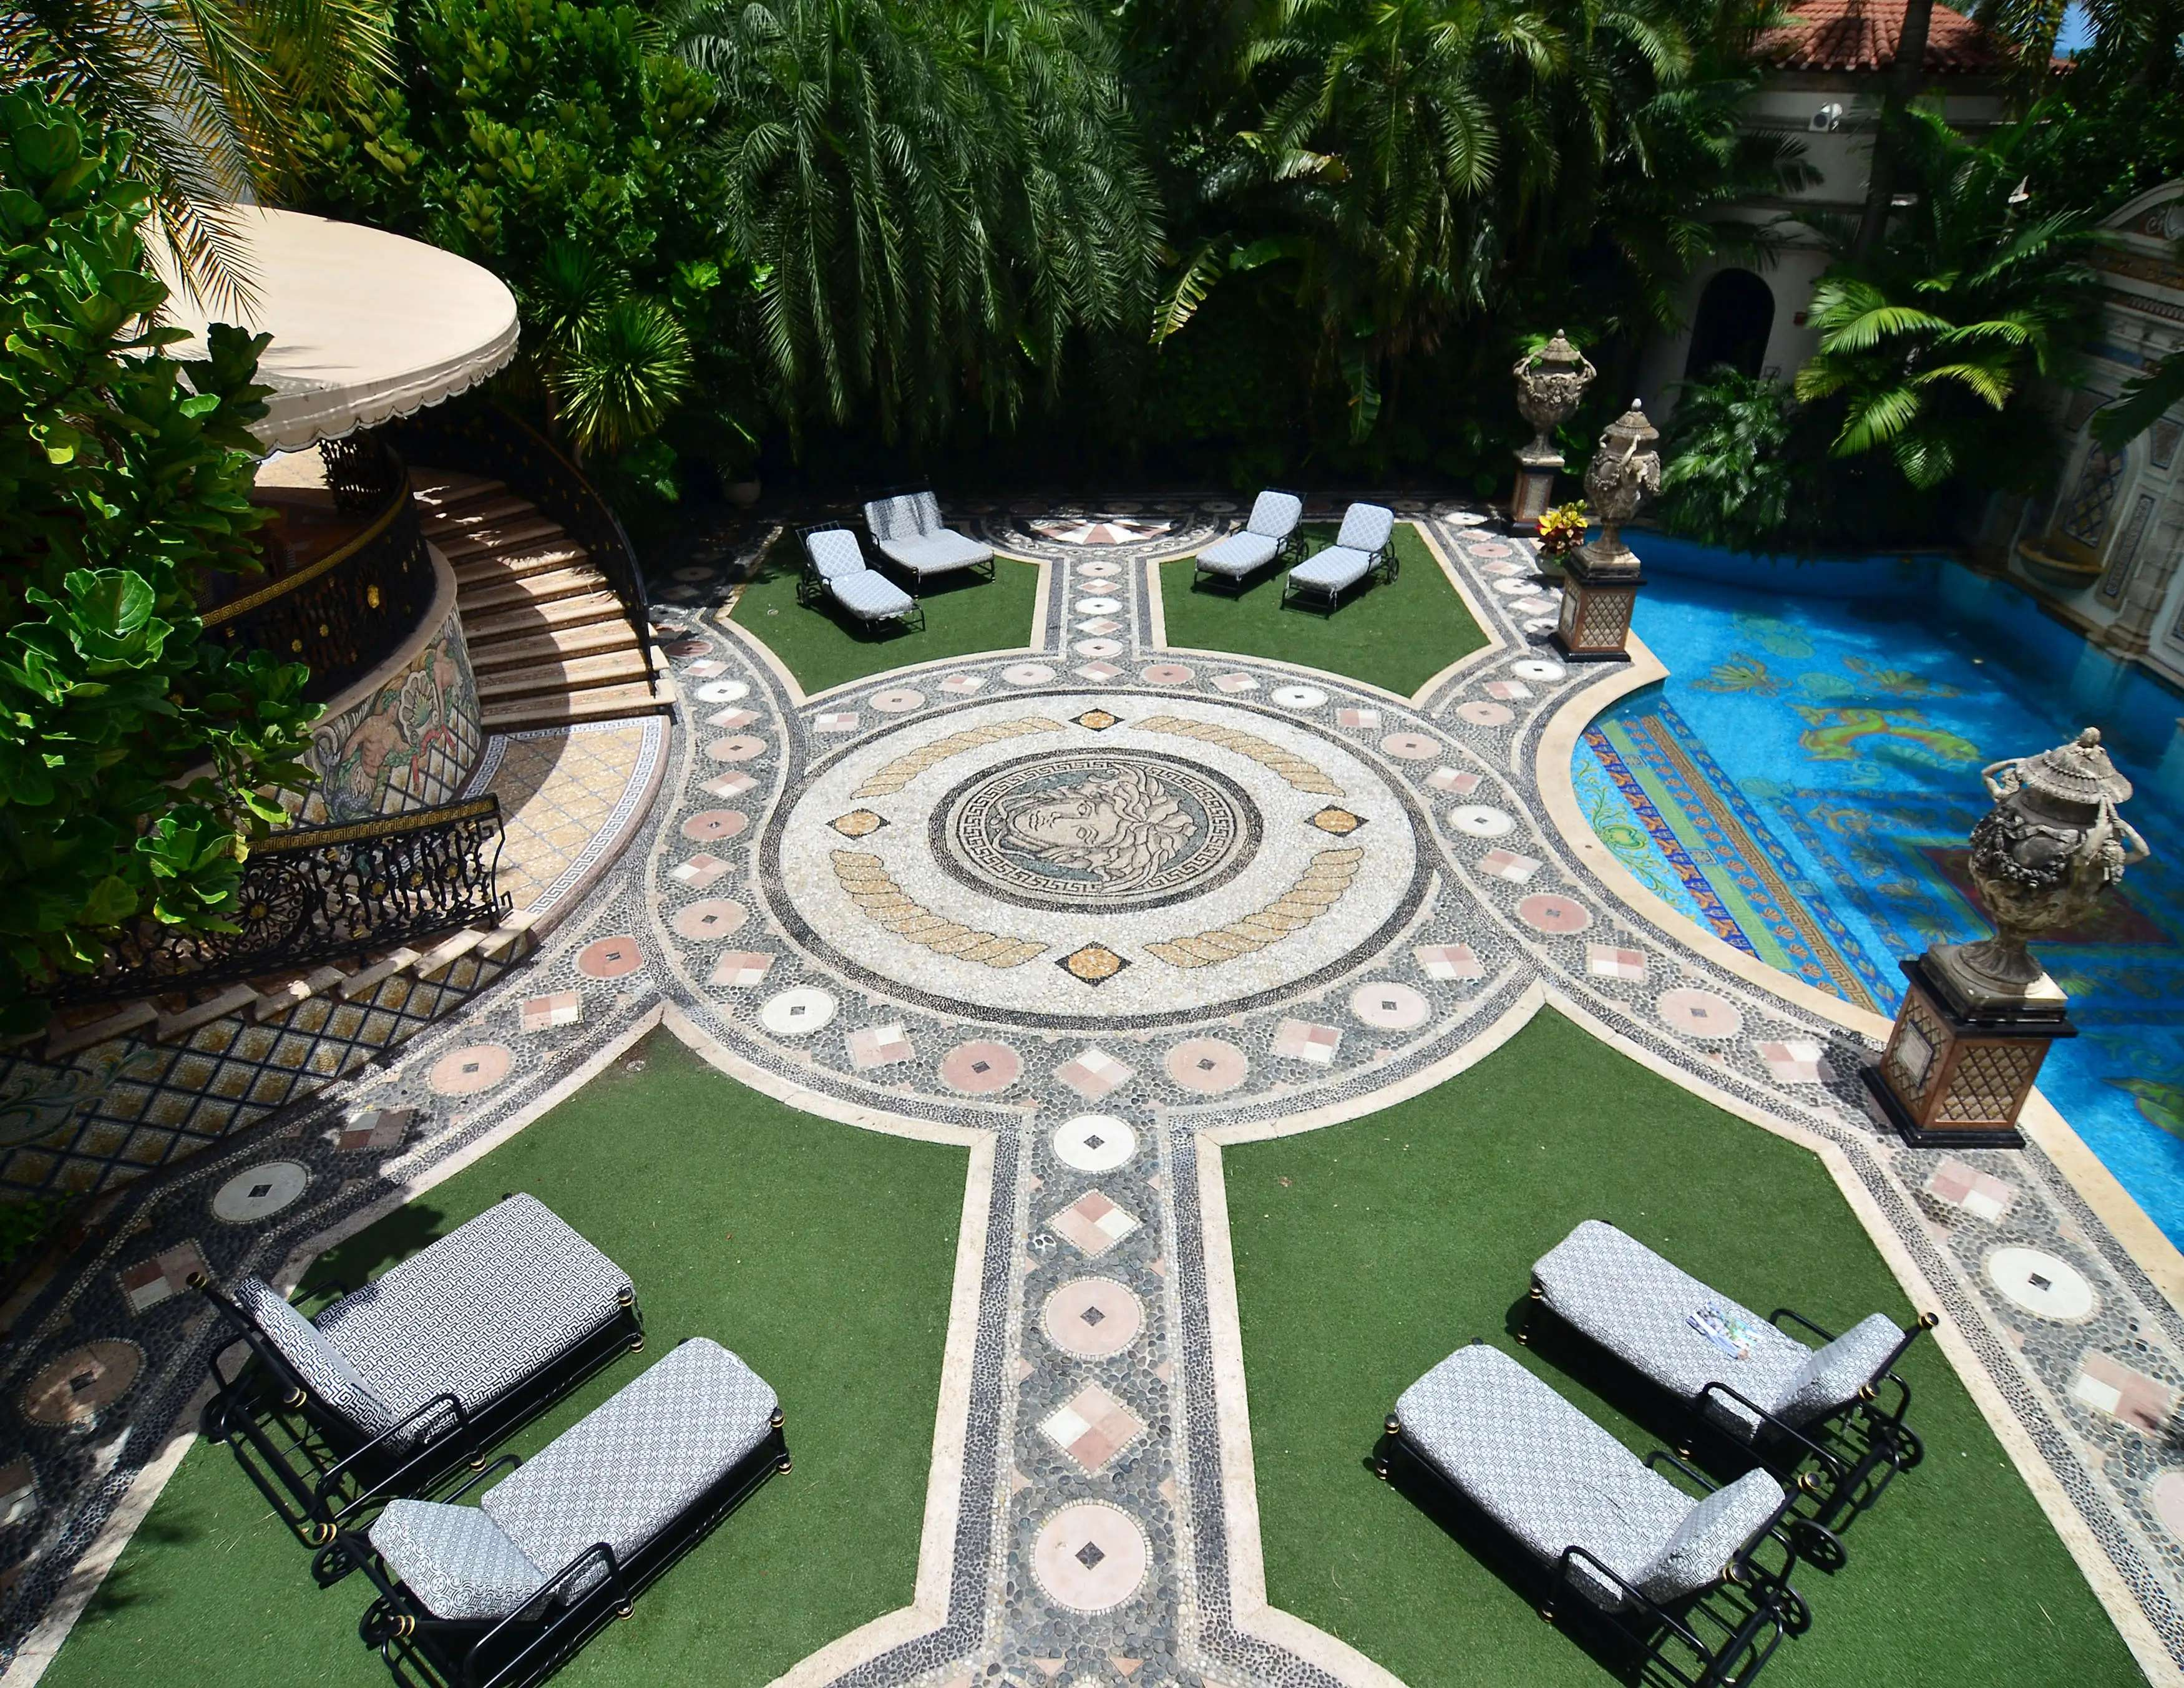 He added mosaics, a pool lined with gold, and 6,100 square feet with a new south wing.